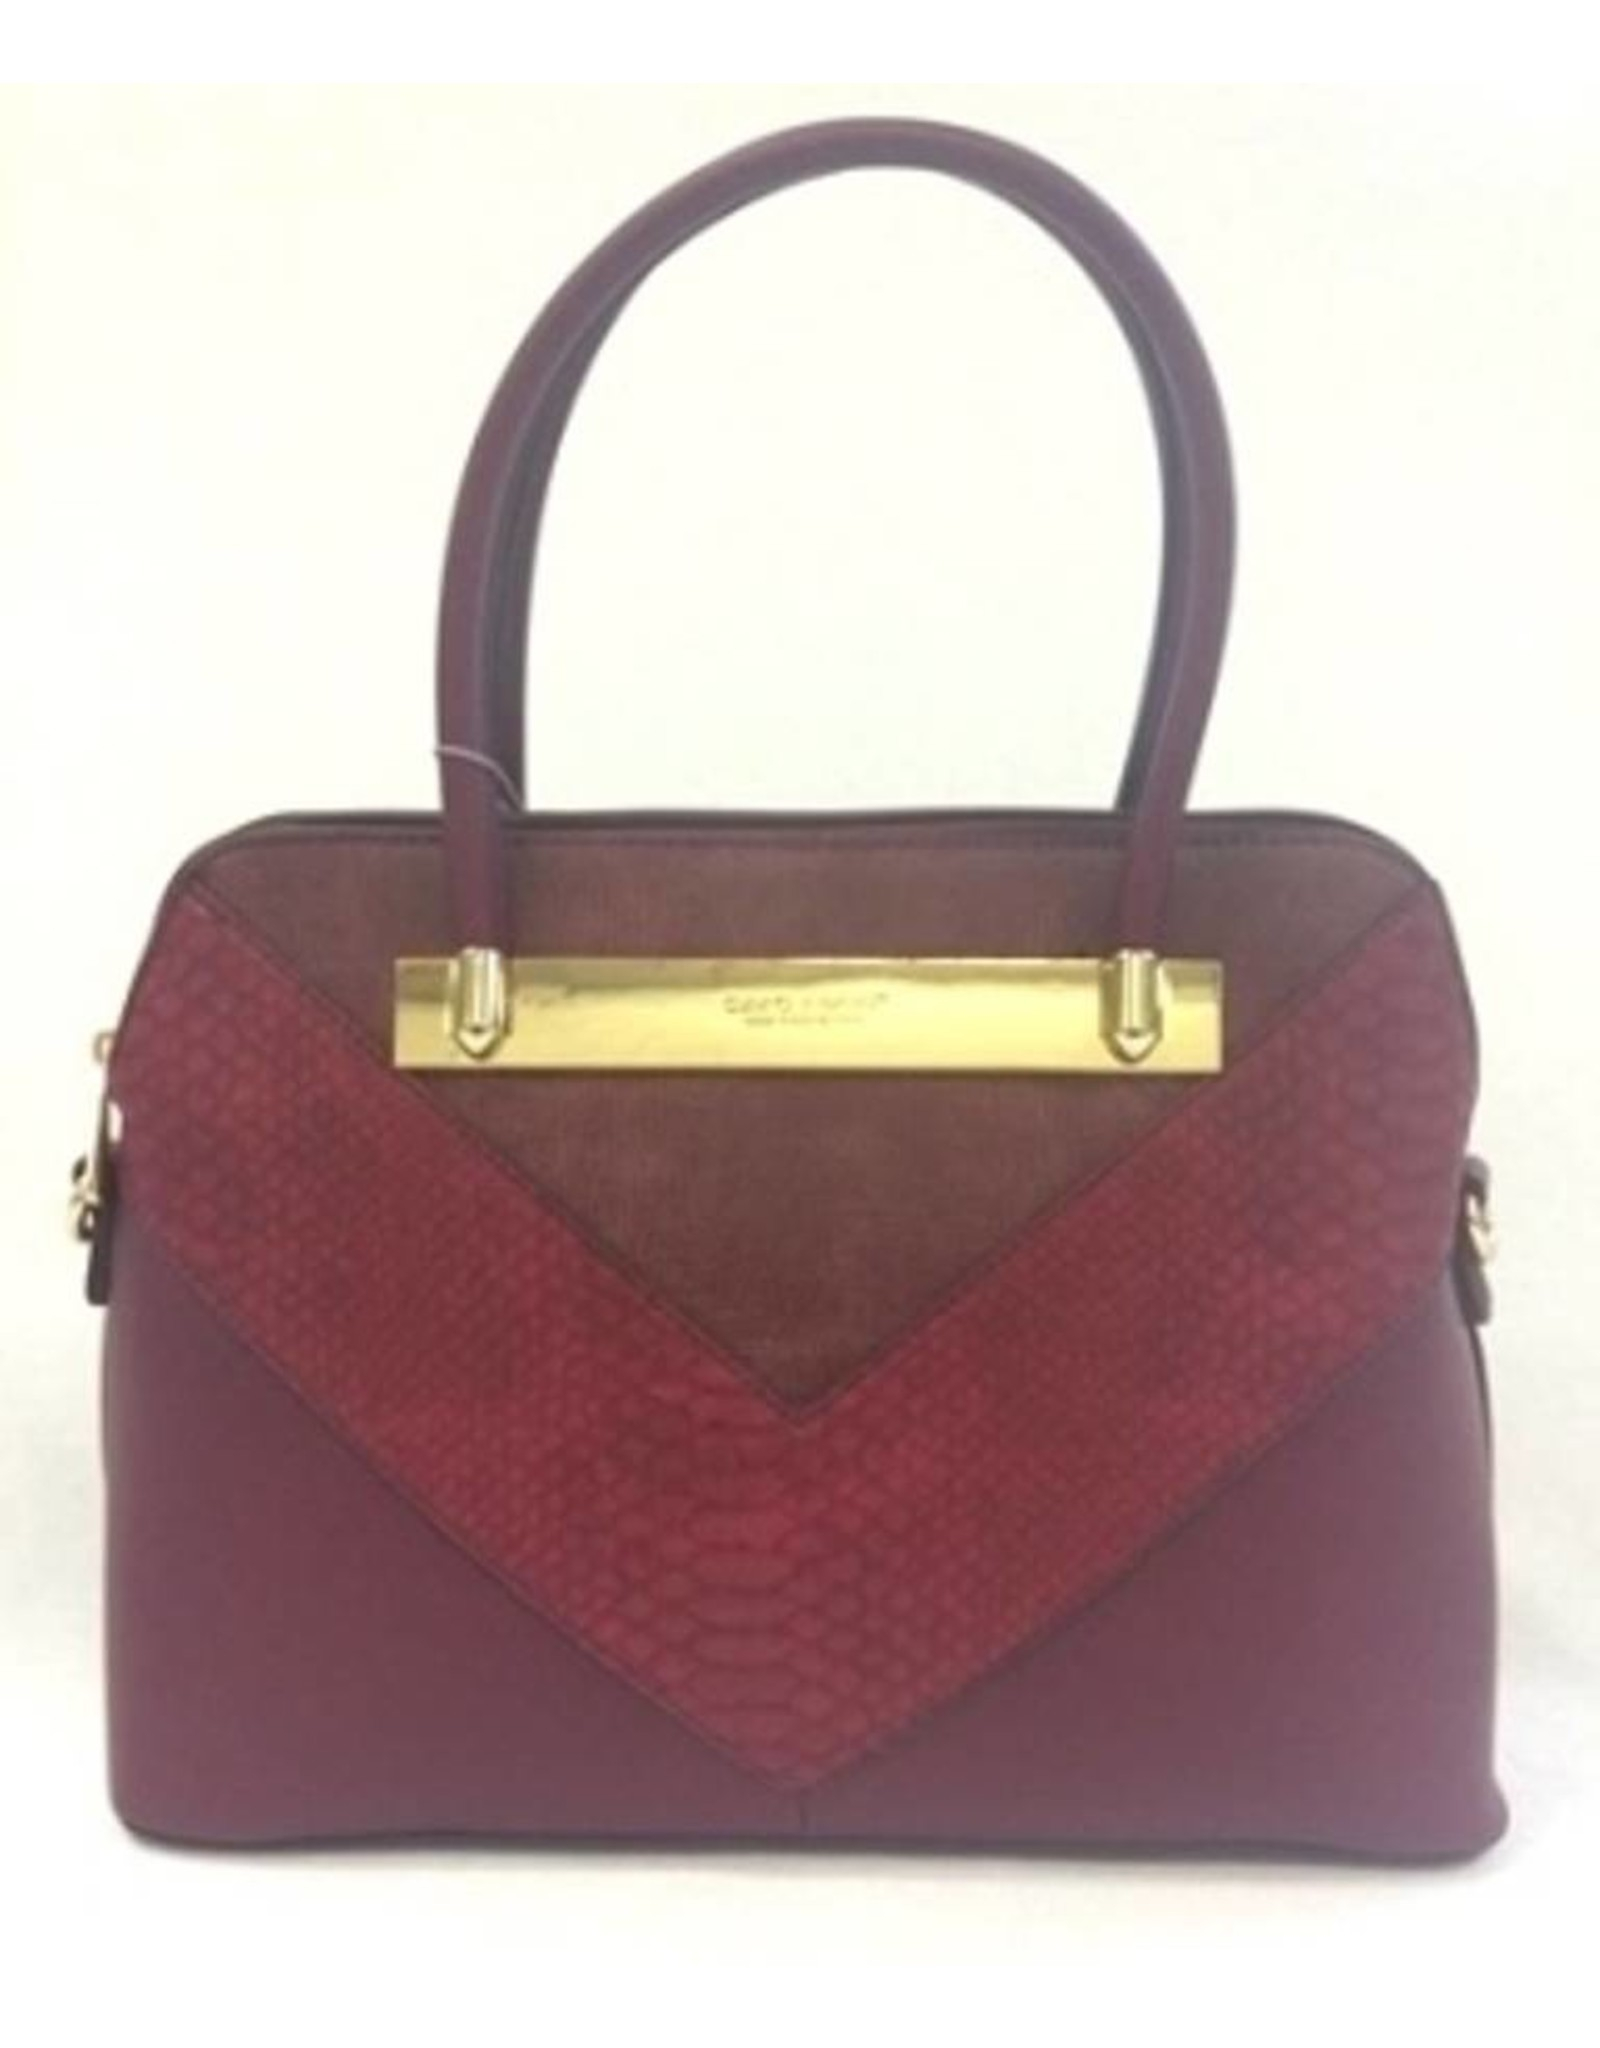 David Jones Handbags - David Jones Handbag Red 5222-1rd